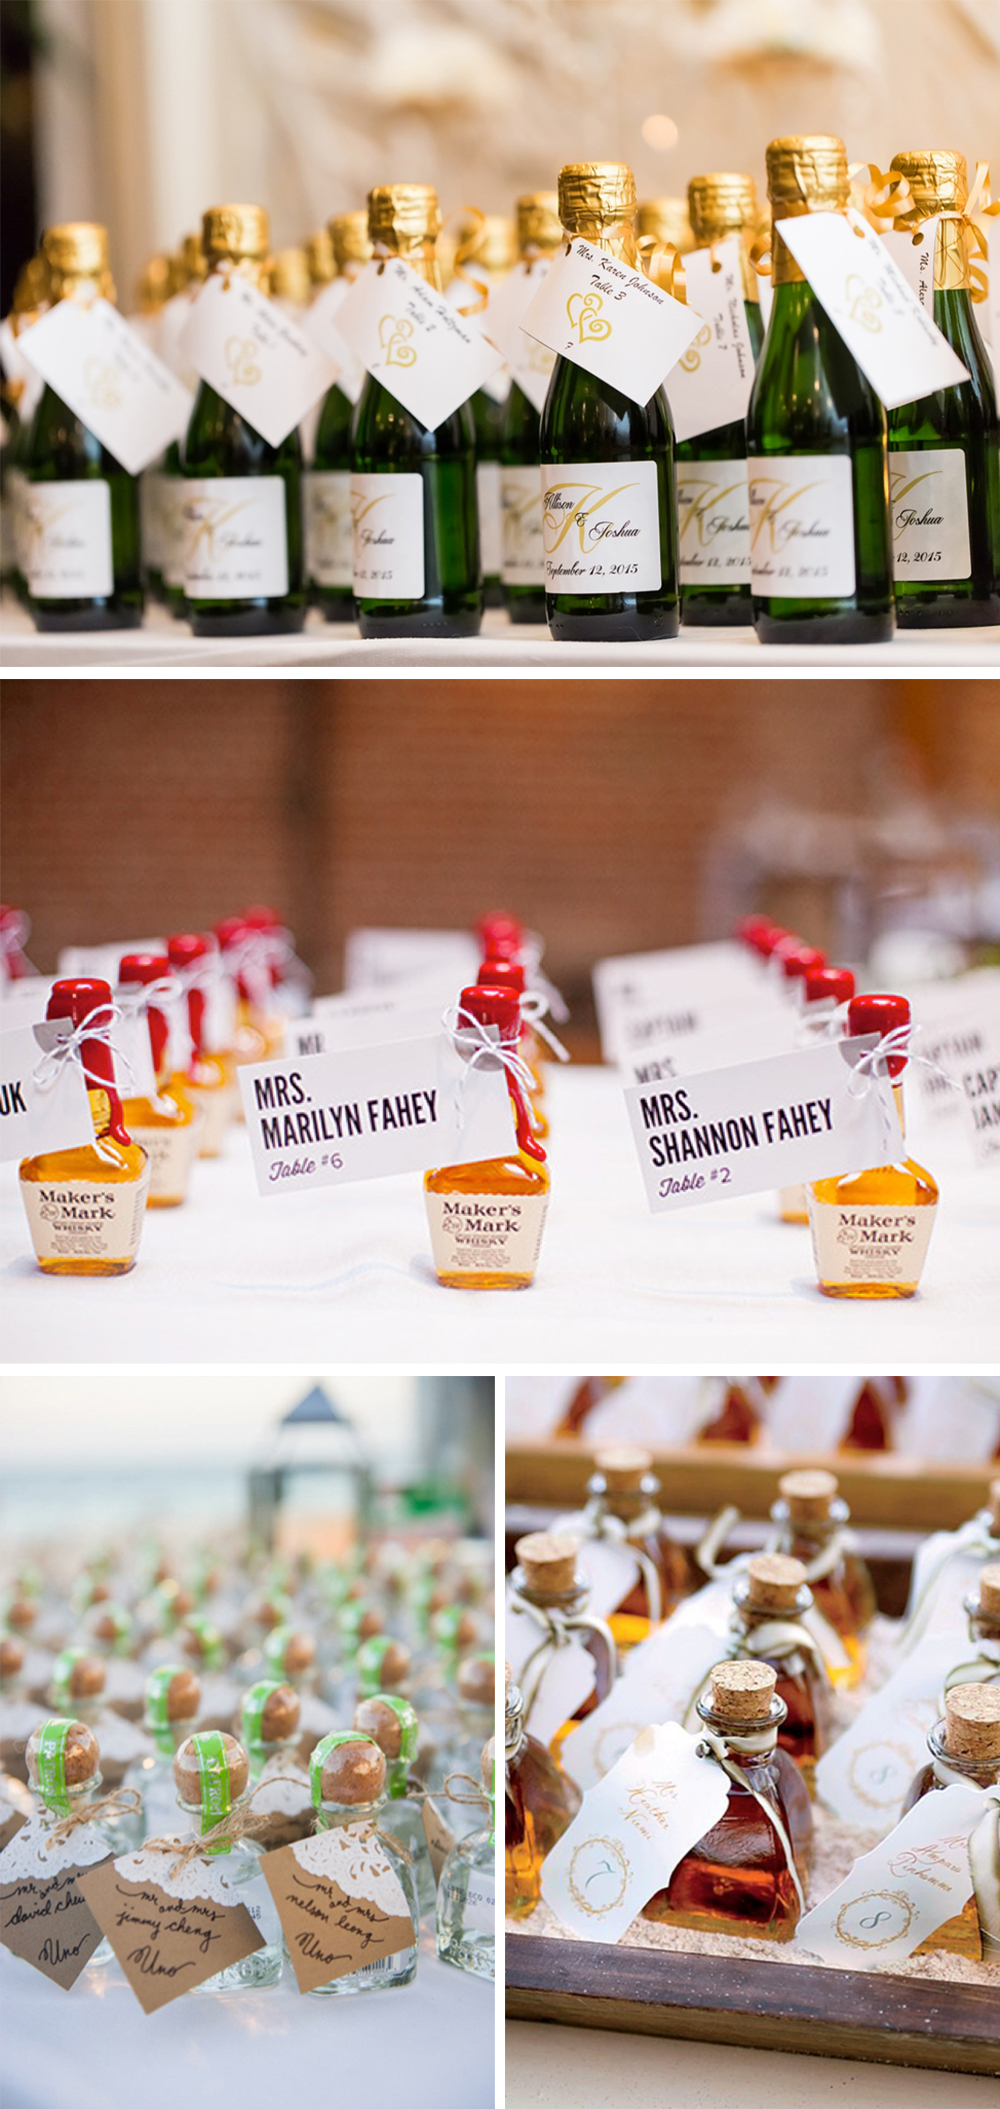 4 Creative Ideas To Include Alcohol Displays In Your Wedding Reception